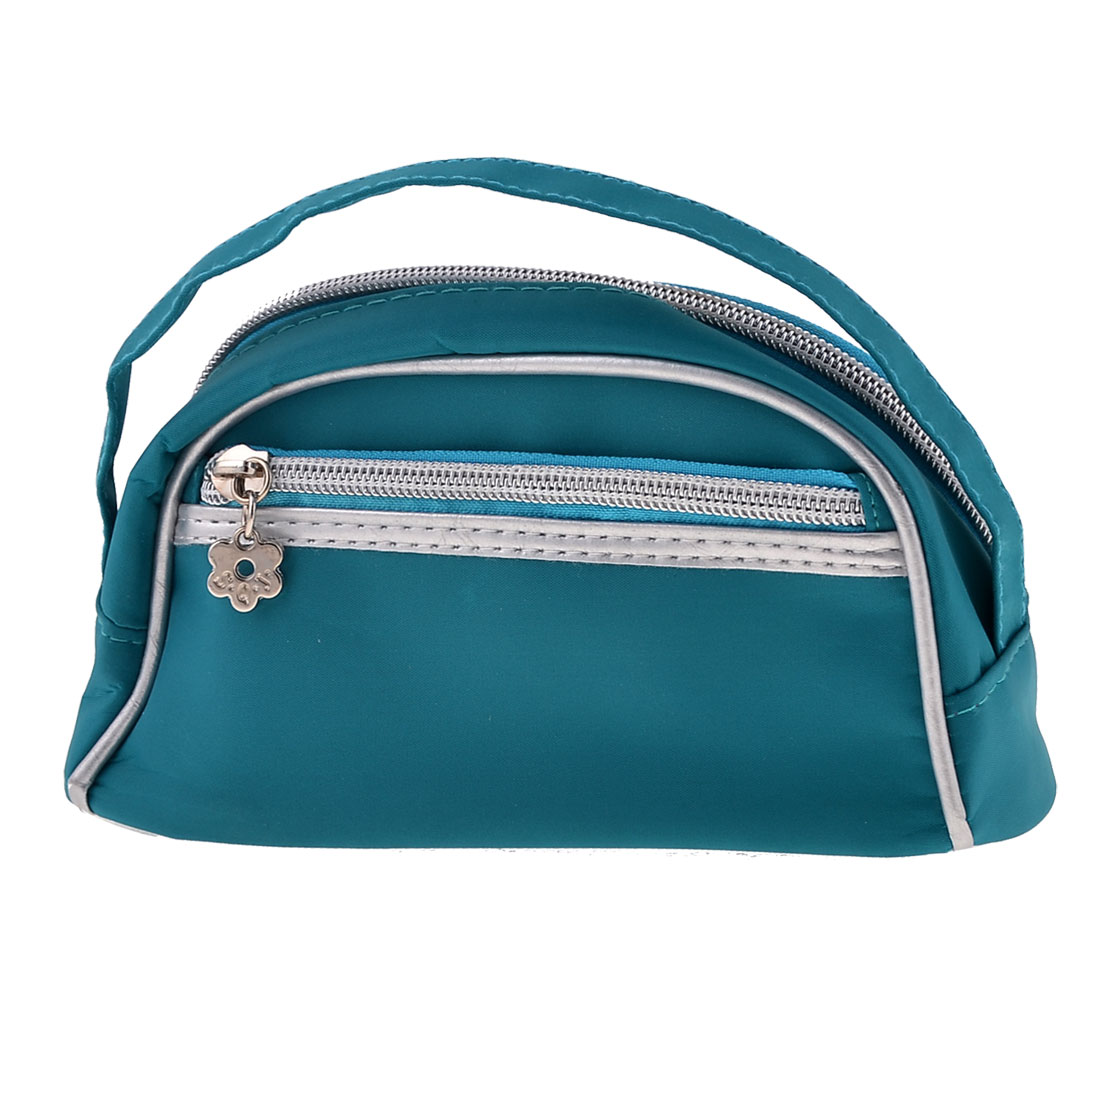 Lady Zipper Closure Make Up Case Handbag Purse w Mirror Teal Blue